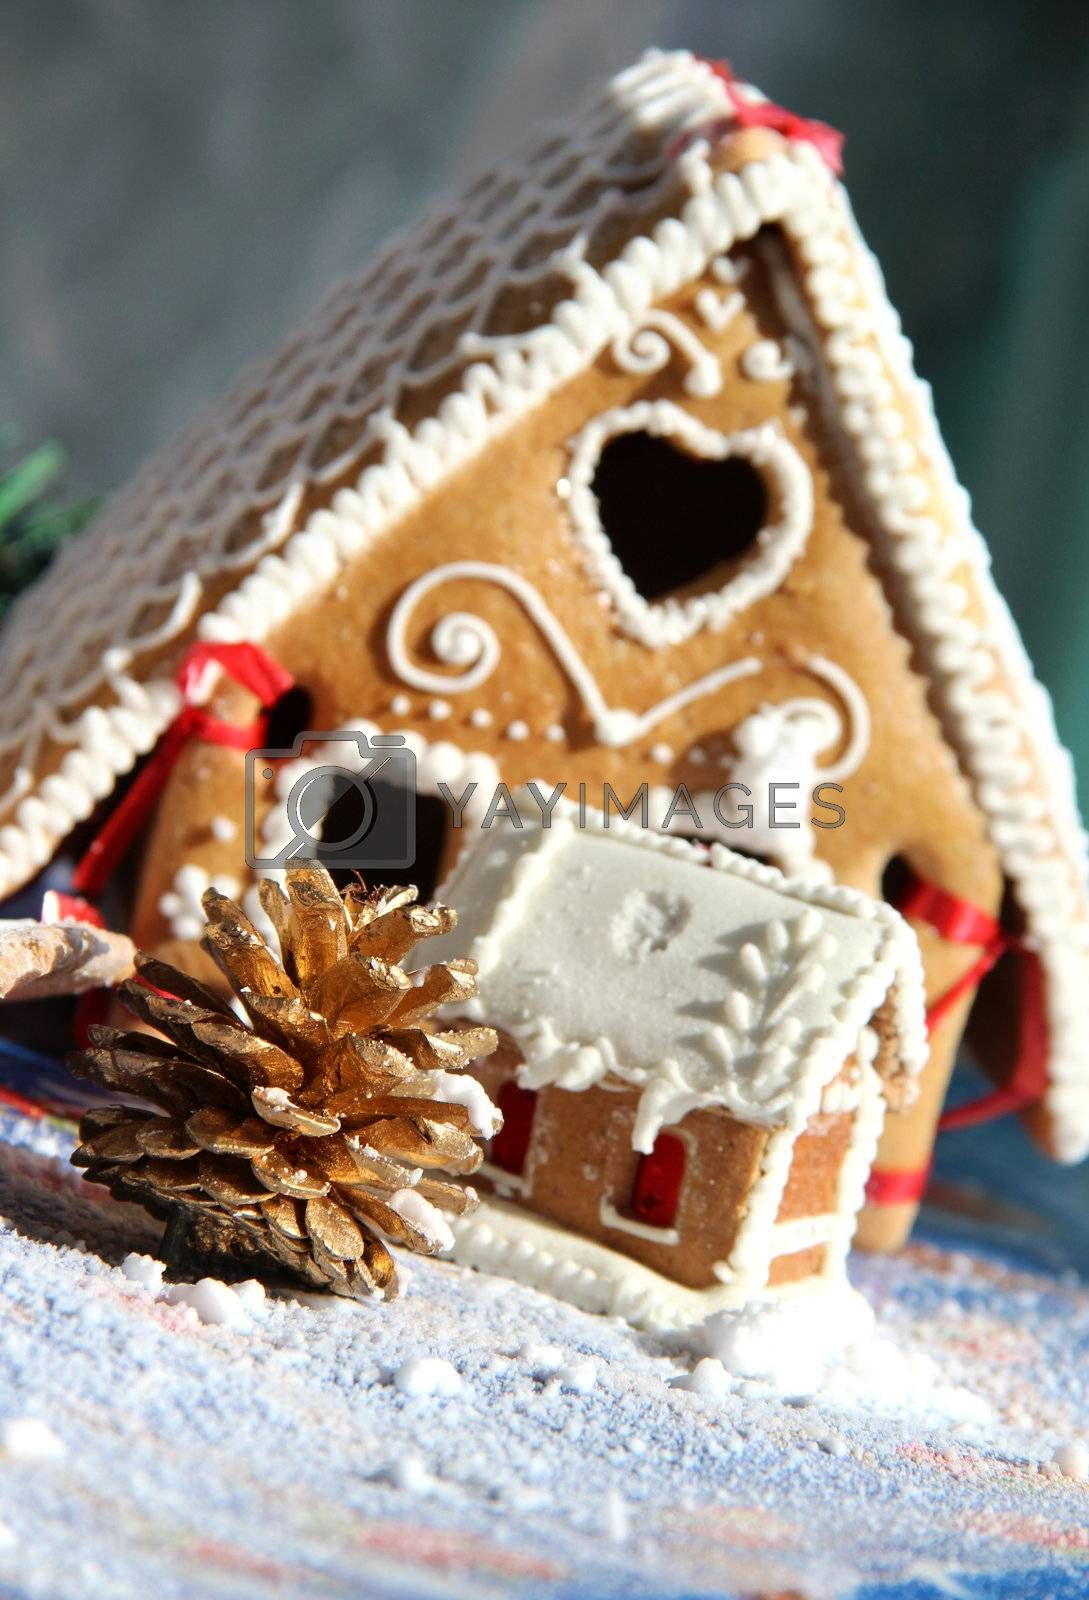 Christmas baked sweet houses and decorations